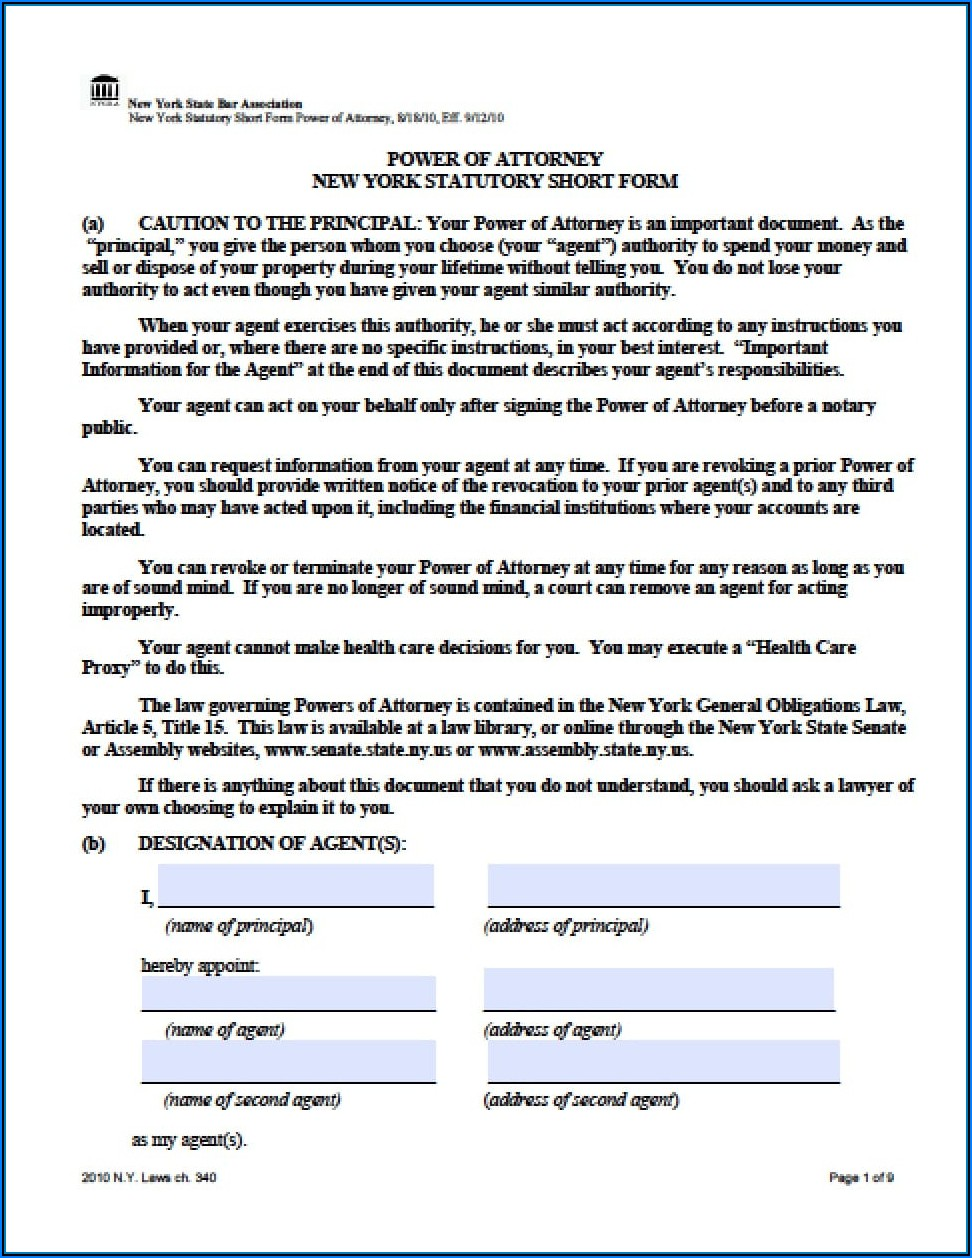 Revocation Of Power Of Attorney Template New York